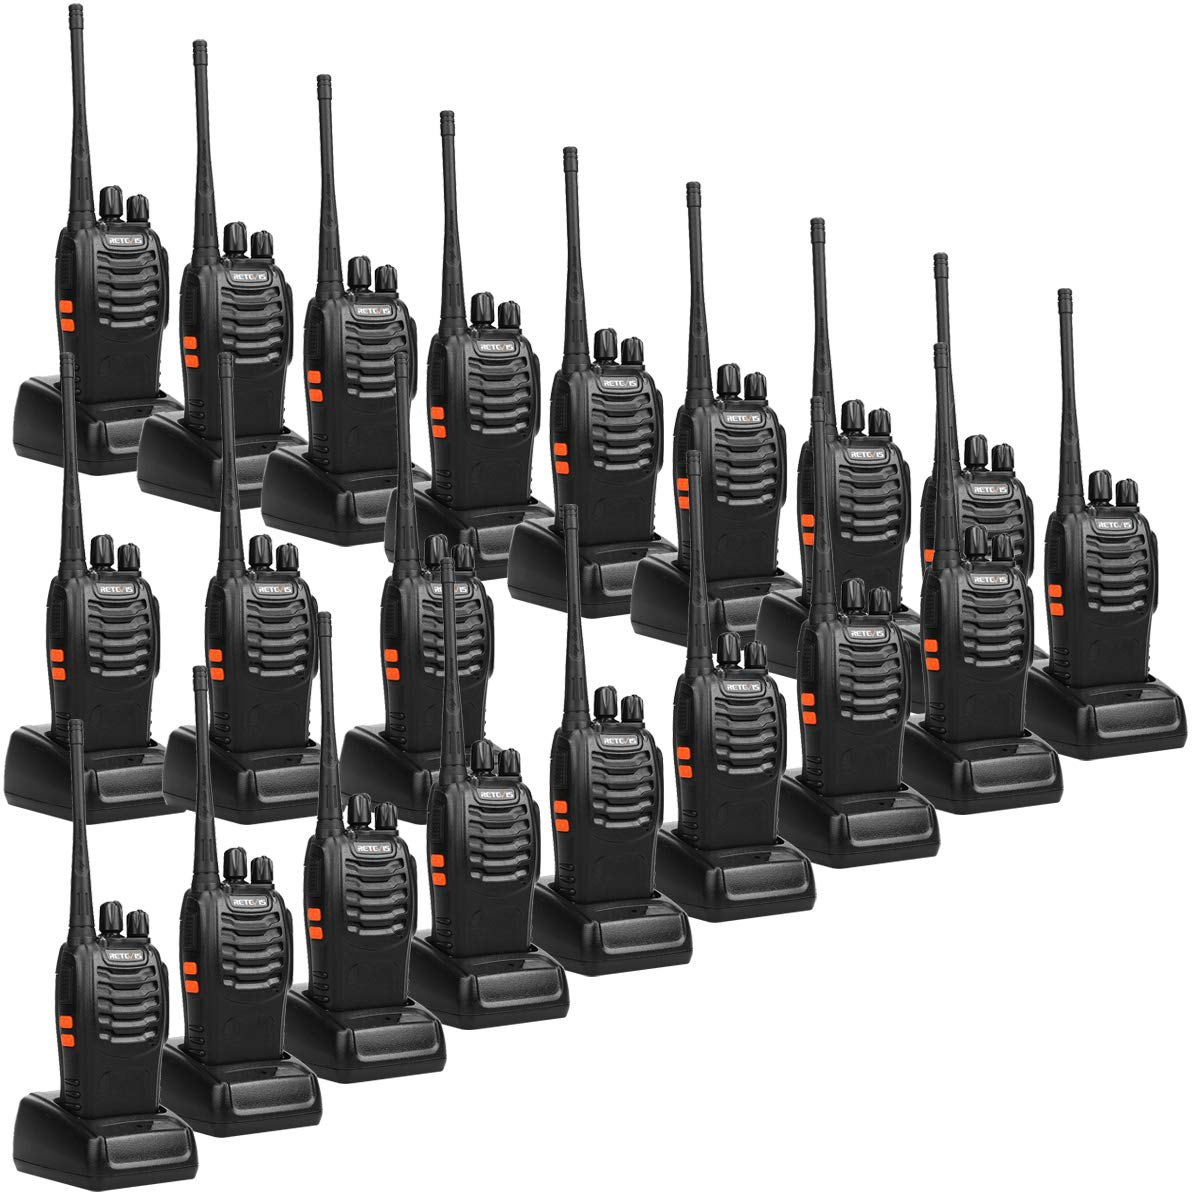 Retevis H-777 2 Way Radios UHF Long Range 16CH Emergency Portable Walkie Talkies Set (20 Pack) with USB Charging Base by Retevis